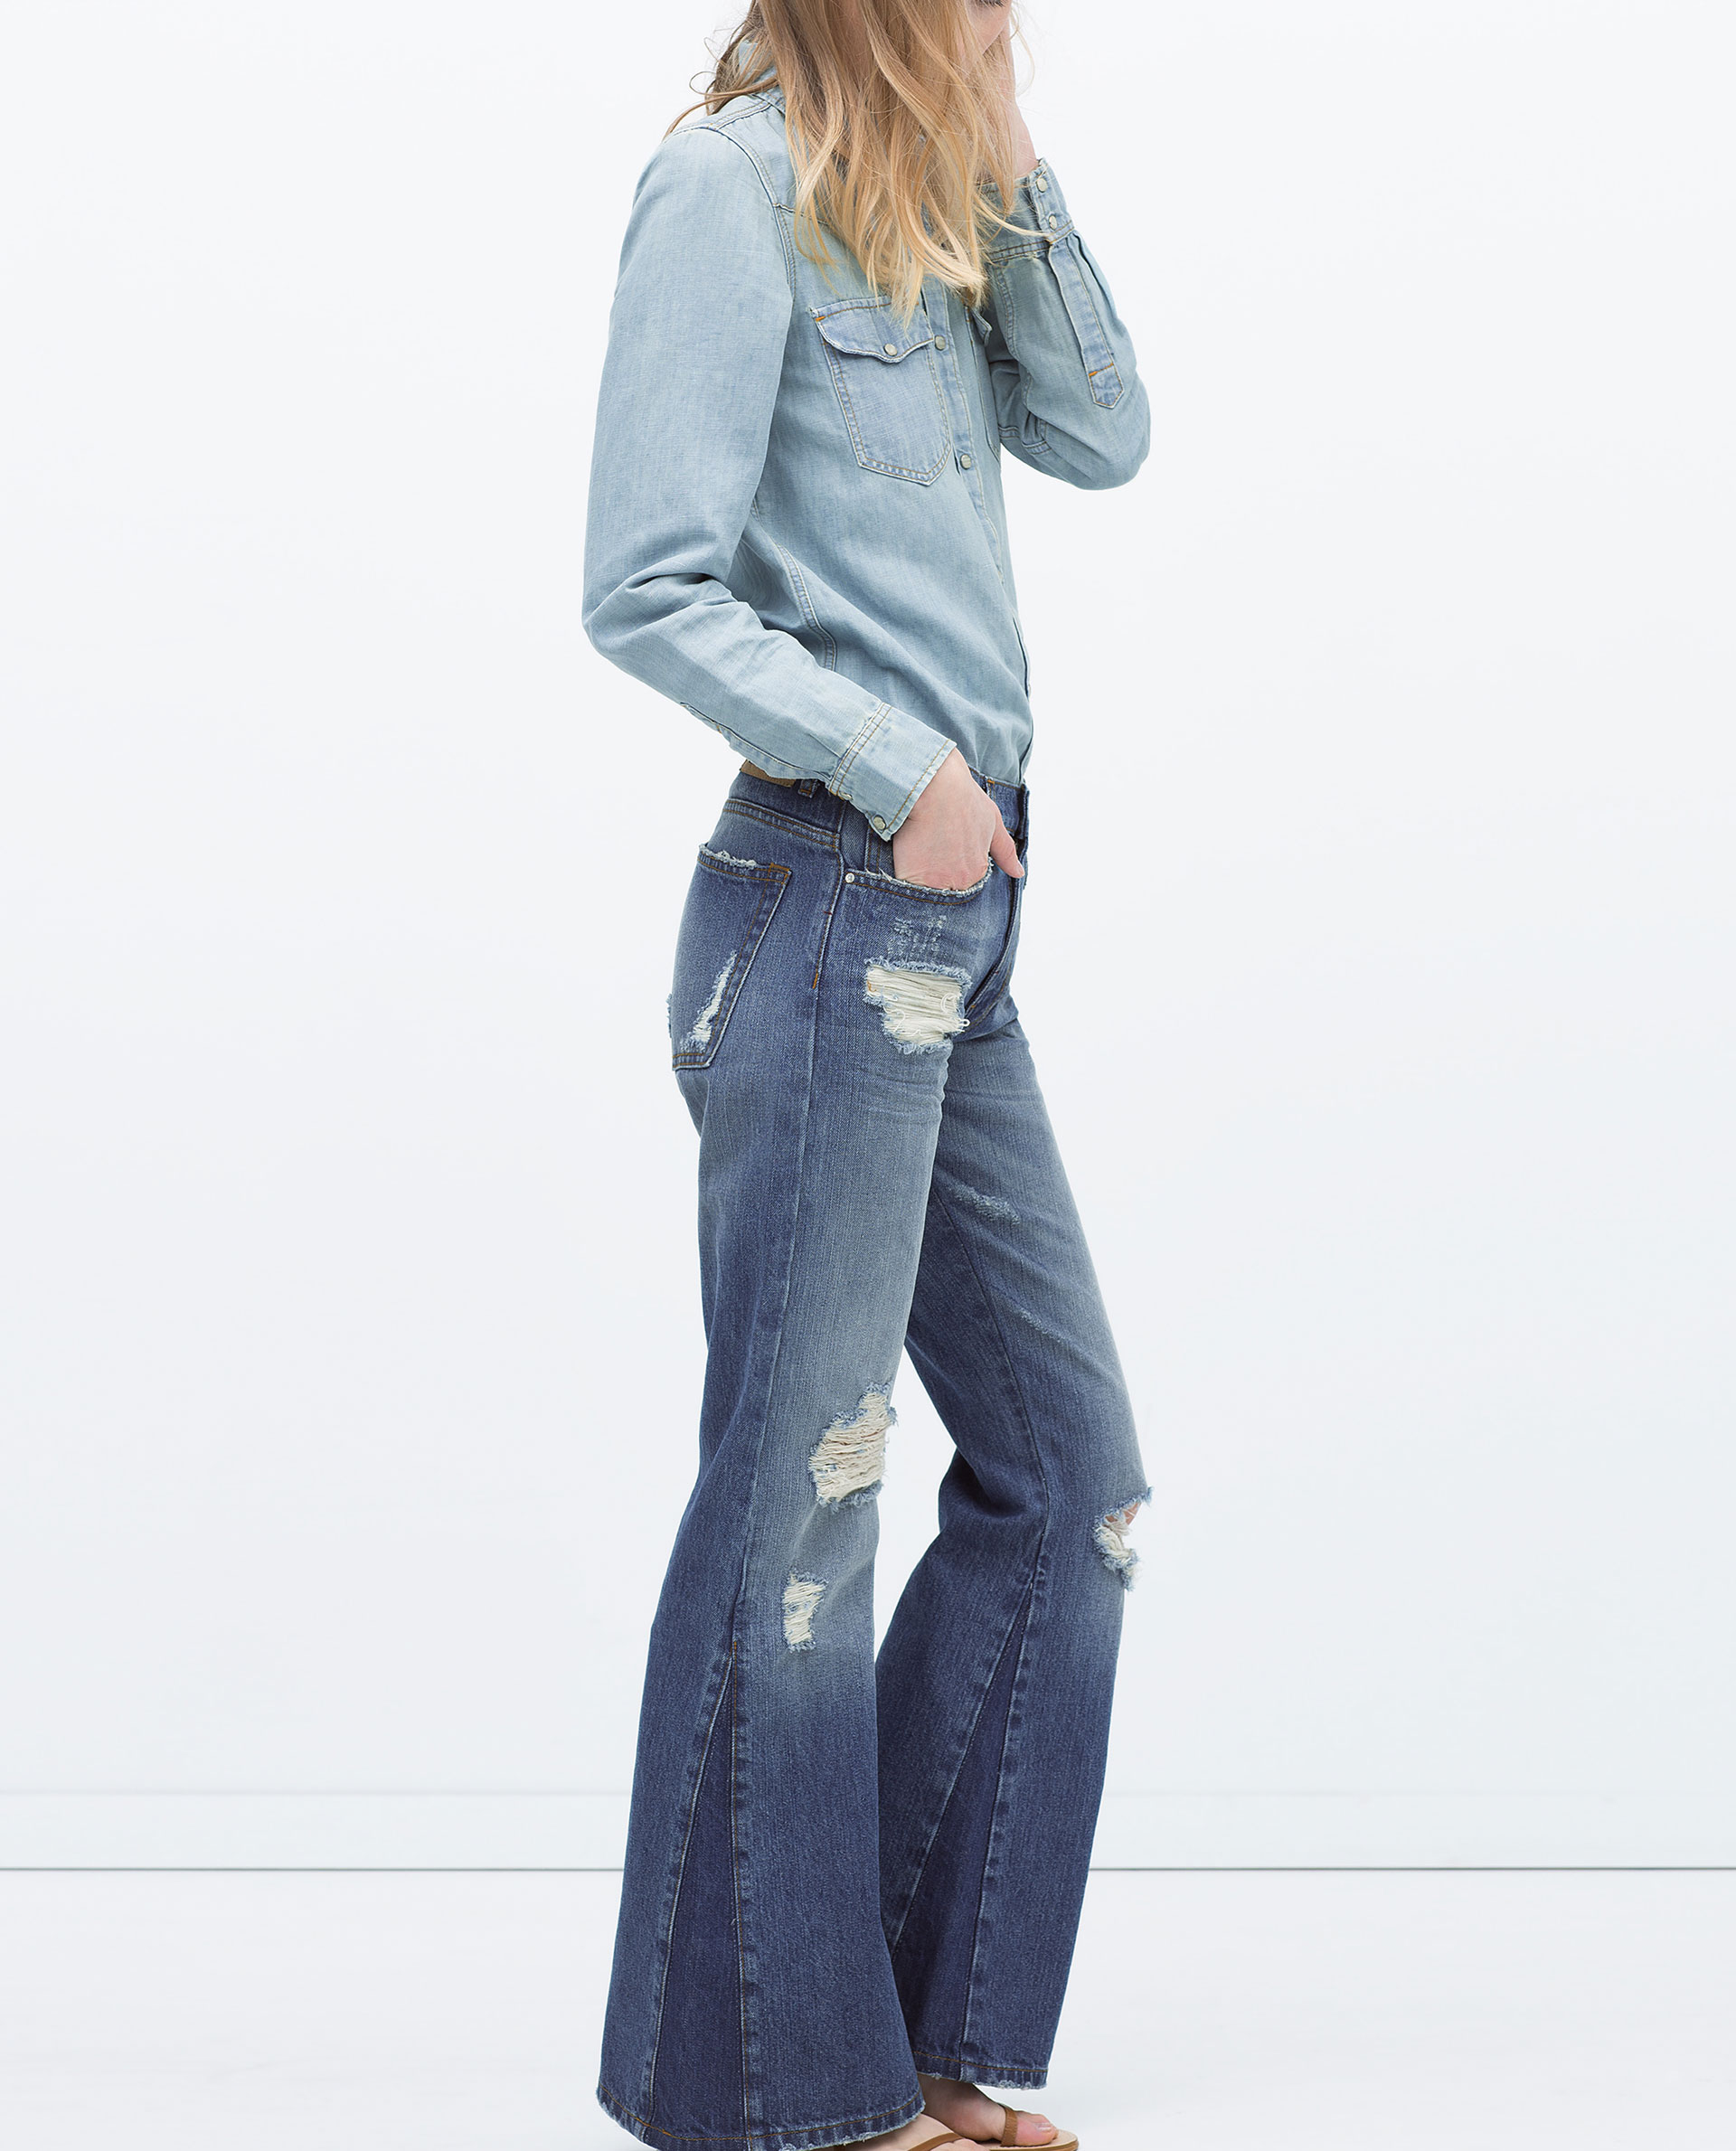 Zara Distressed Flared 70S Jeans Distressed Flared 70S Jeans in ...